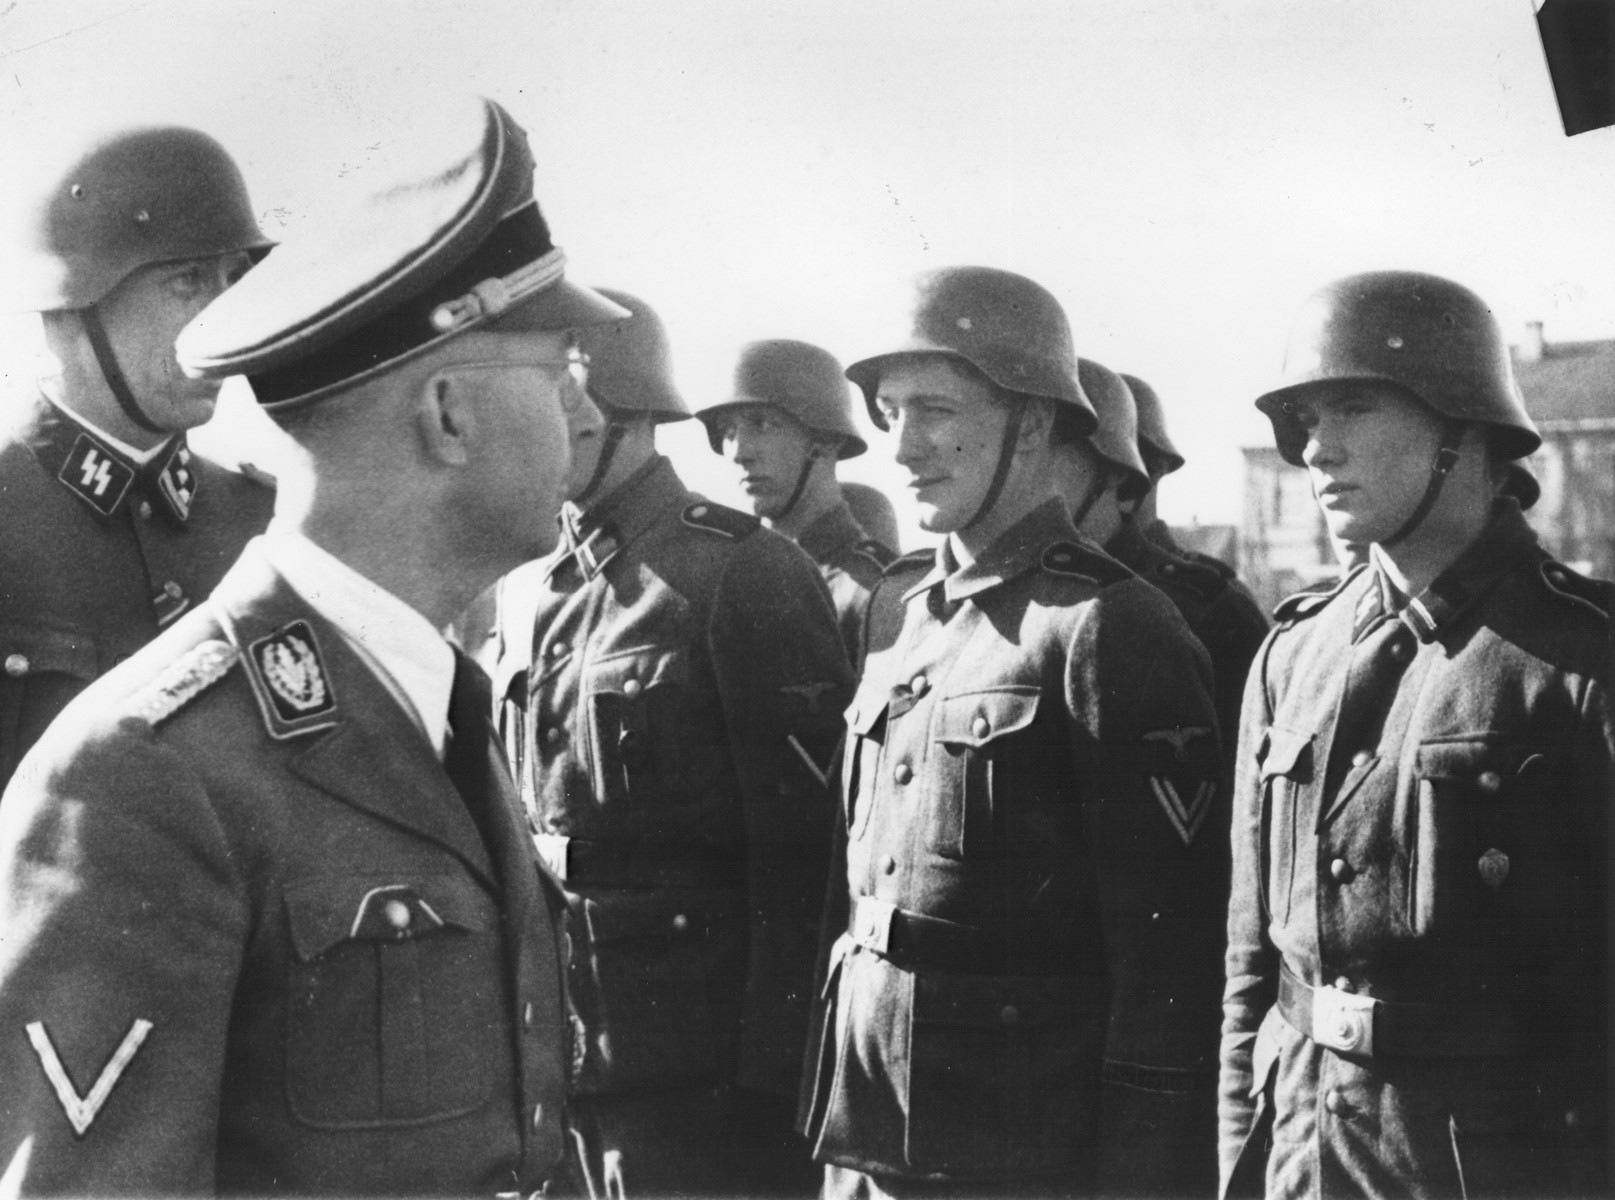 Reichsfuehrer-SS Heinrich Himmler reviews members of the volunteer Norwegian legion of the Waffen-SS.